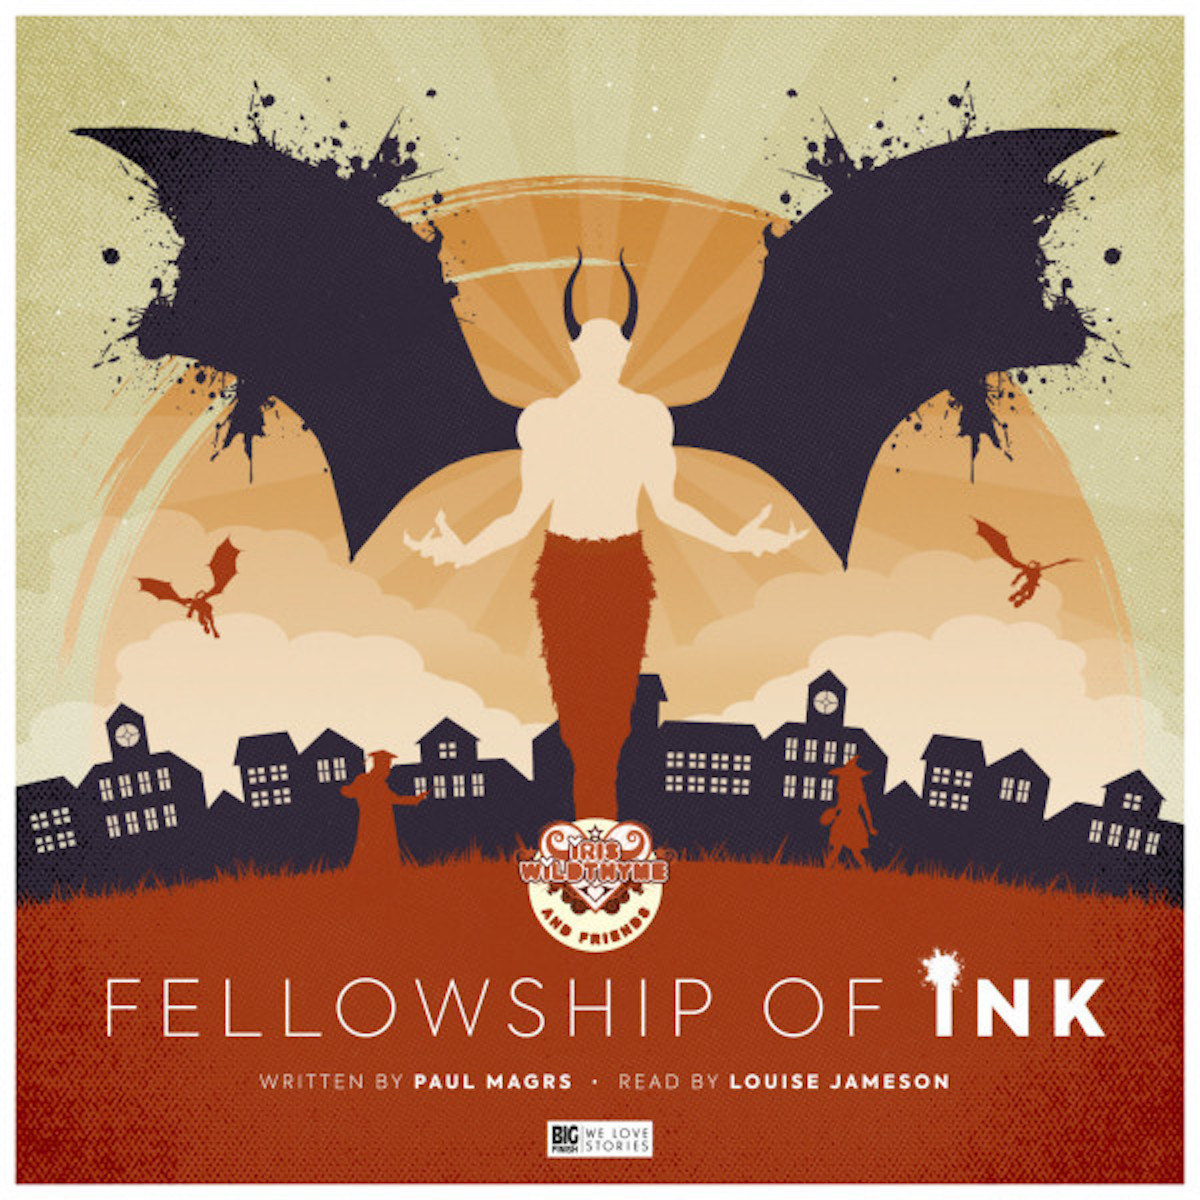 Fellowship of Ink